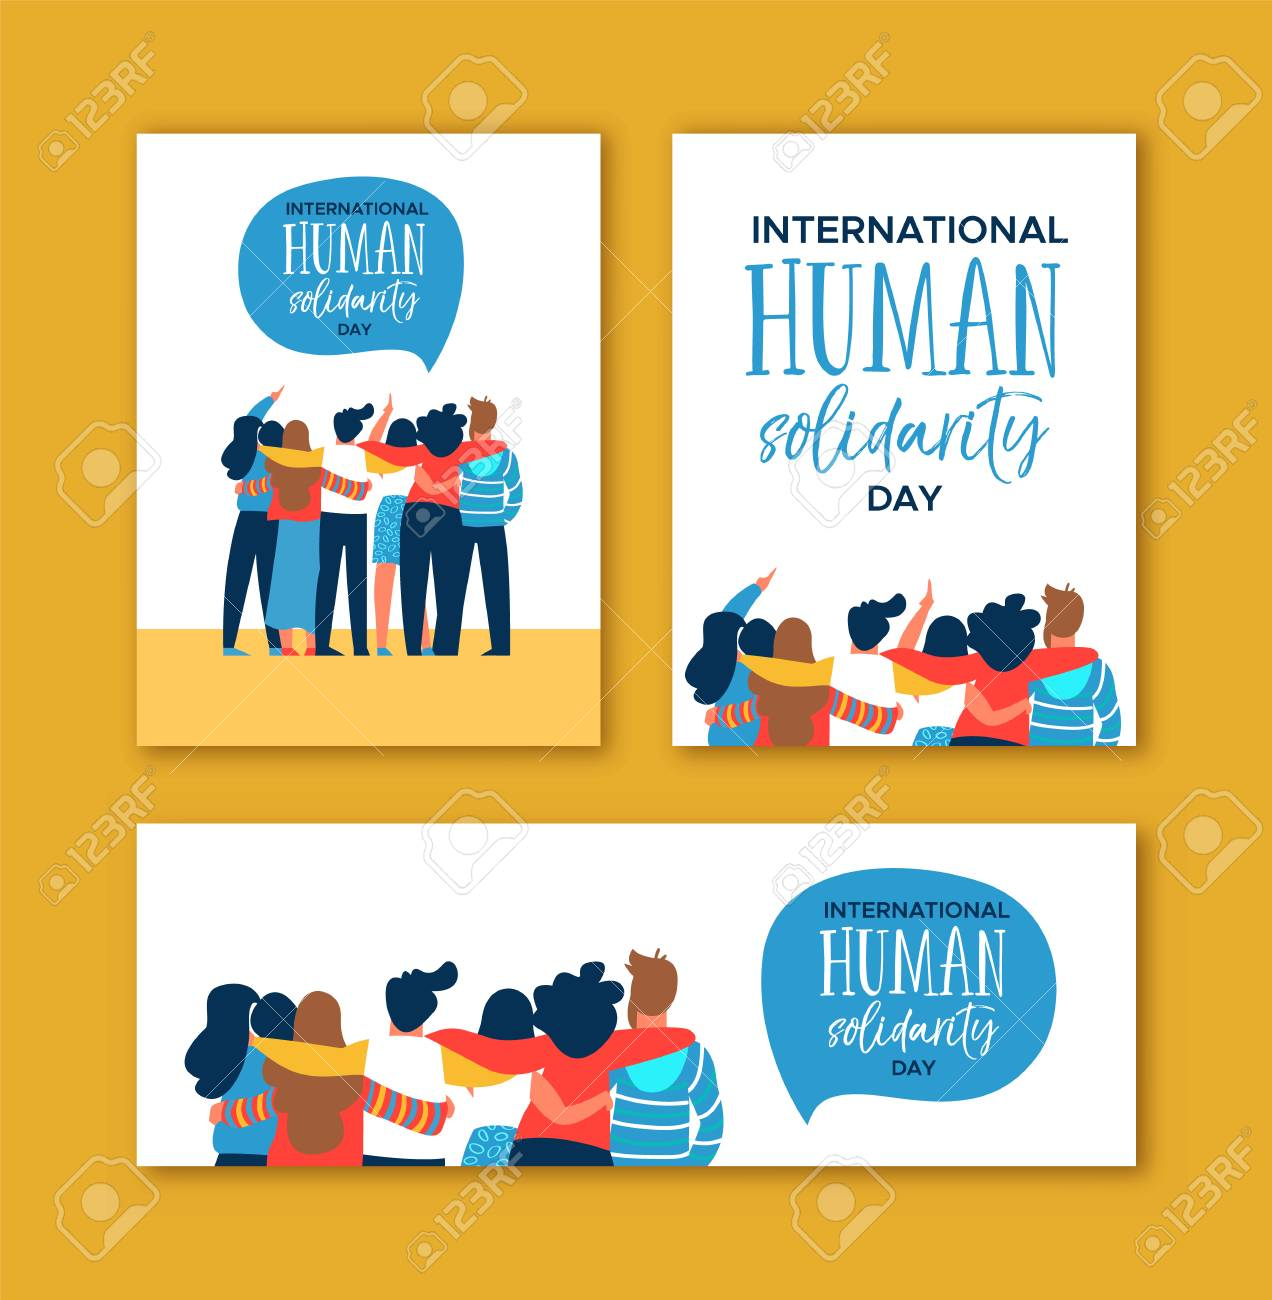 International Human Solidarity Day card set of diverse friend group from different cultures hugging together for community help, social equality concept. - 114114298